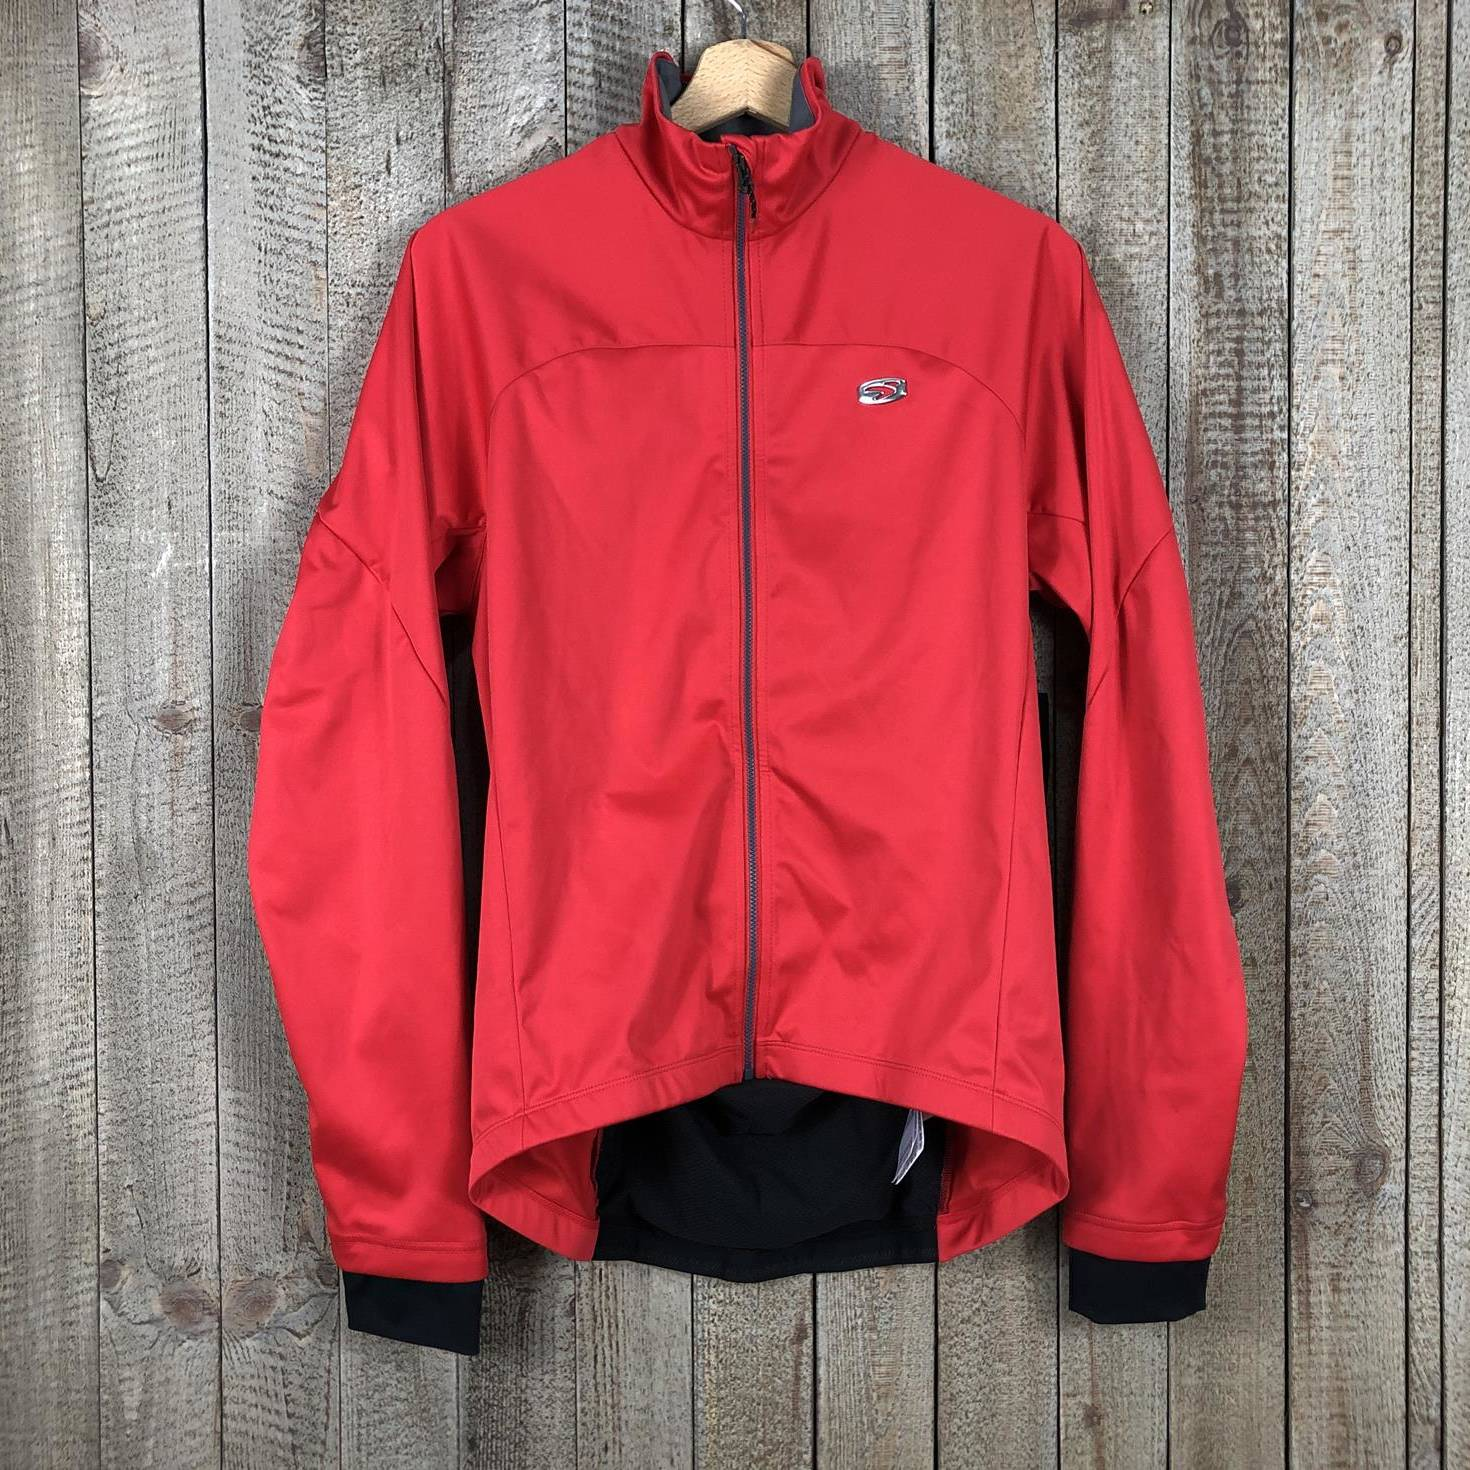 RS 180 Jacket (1)